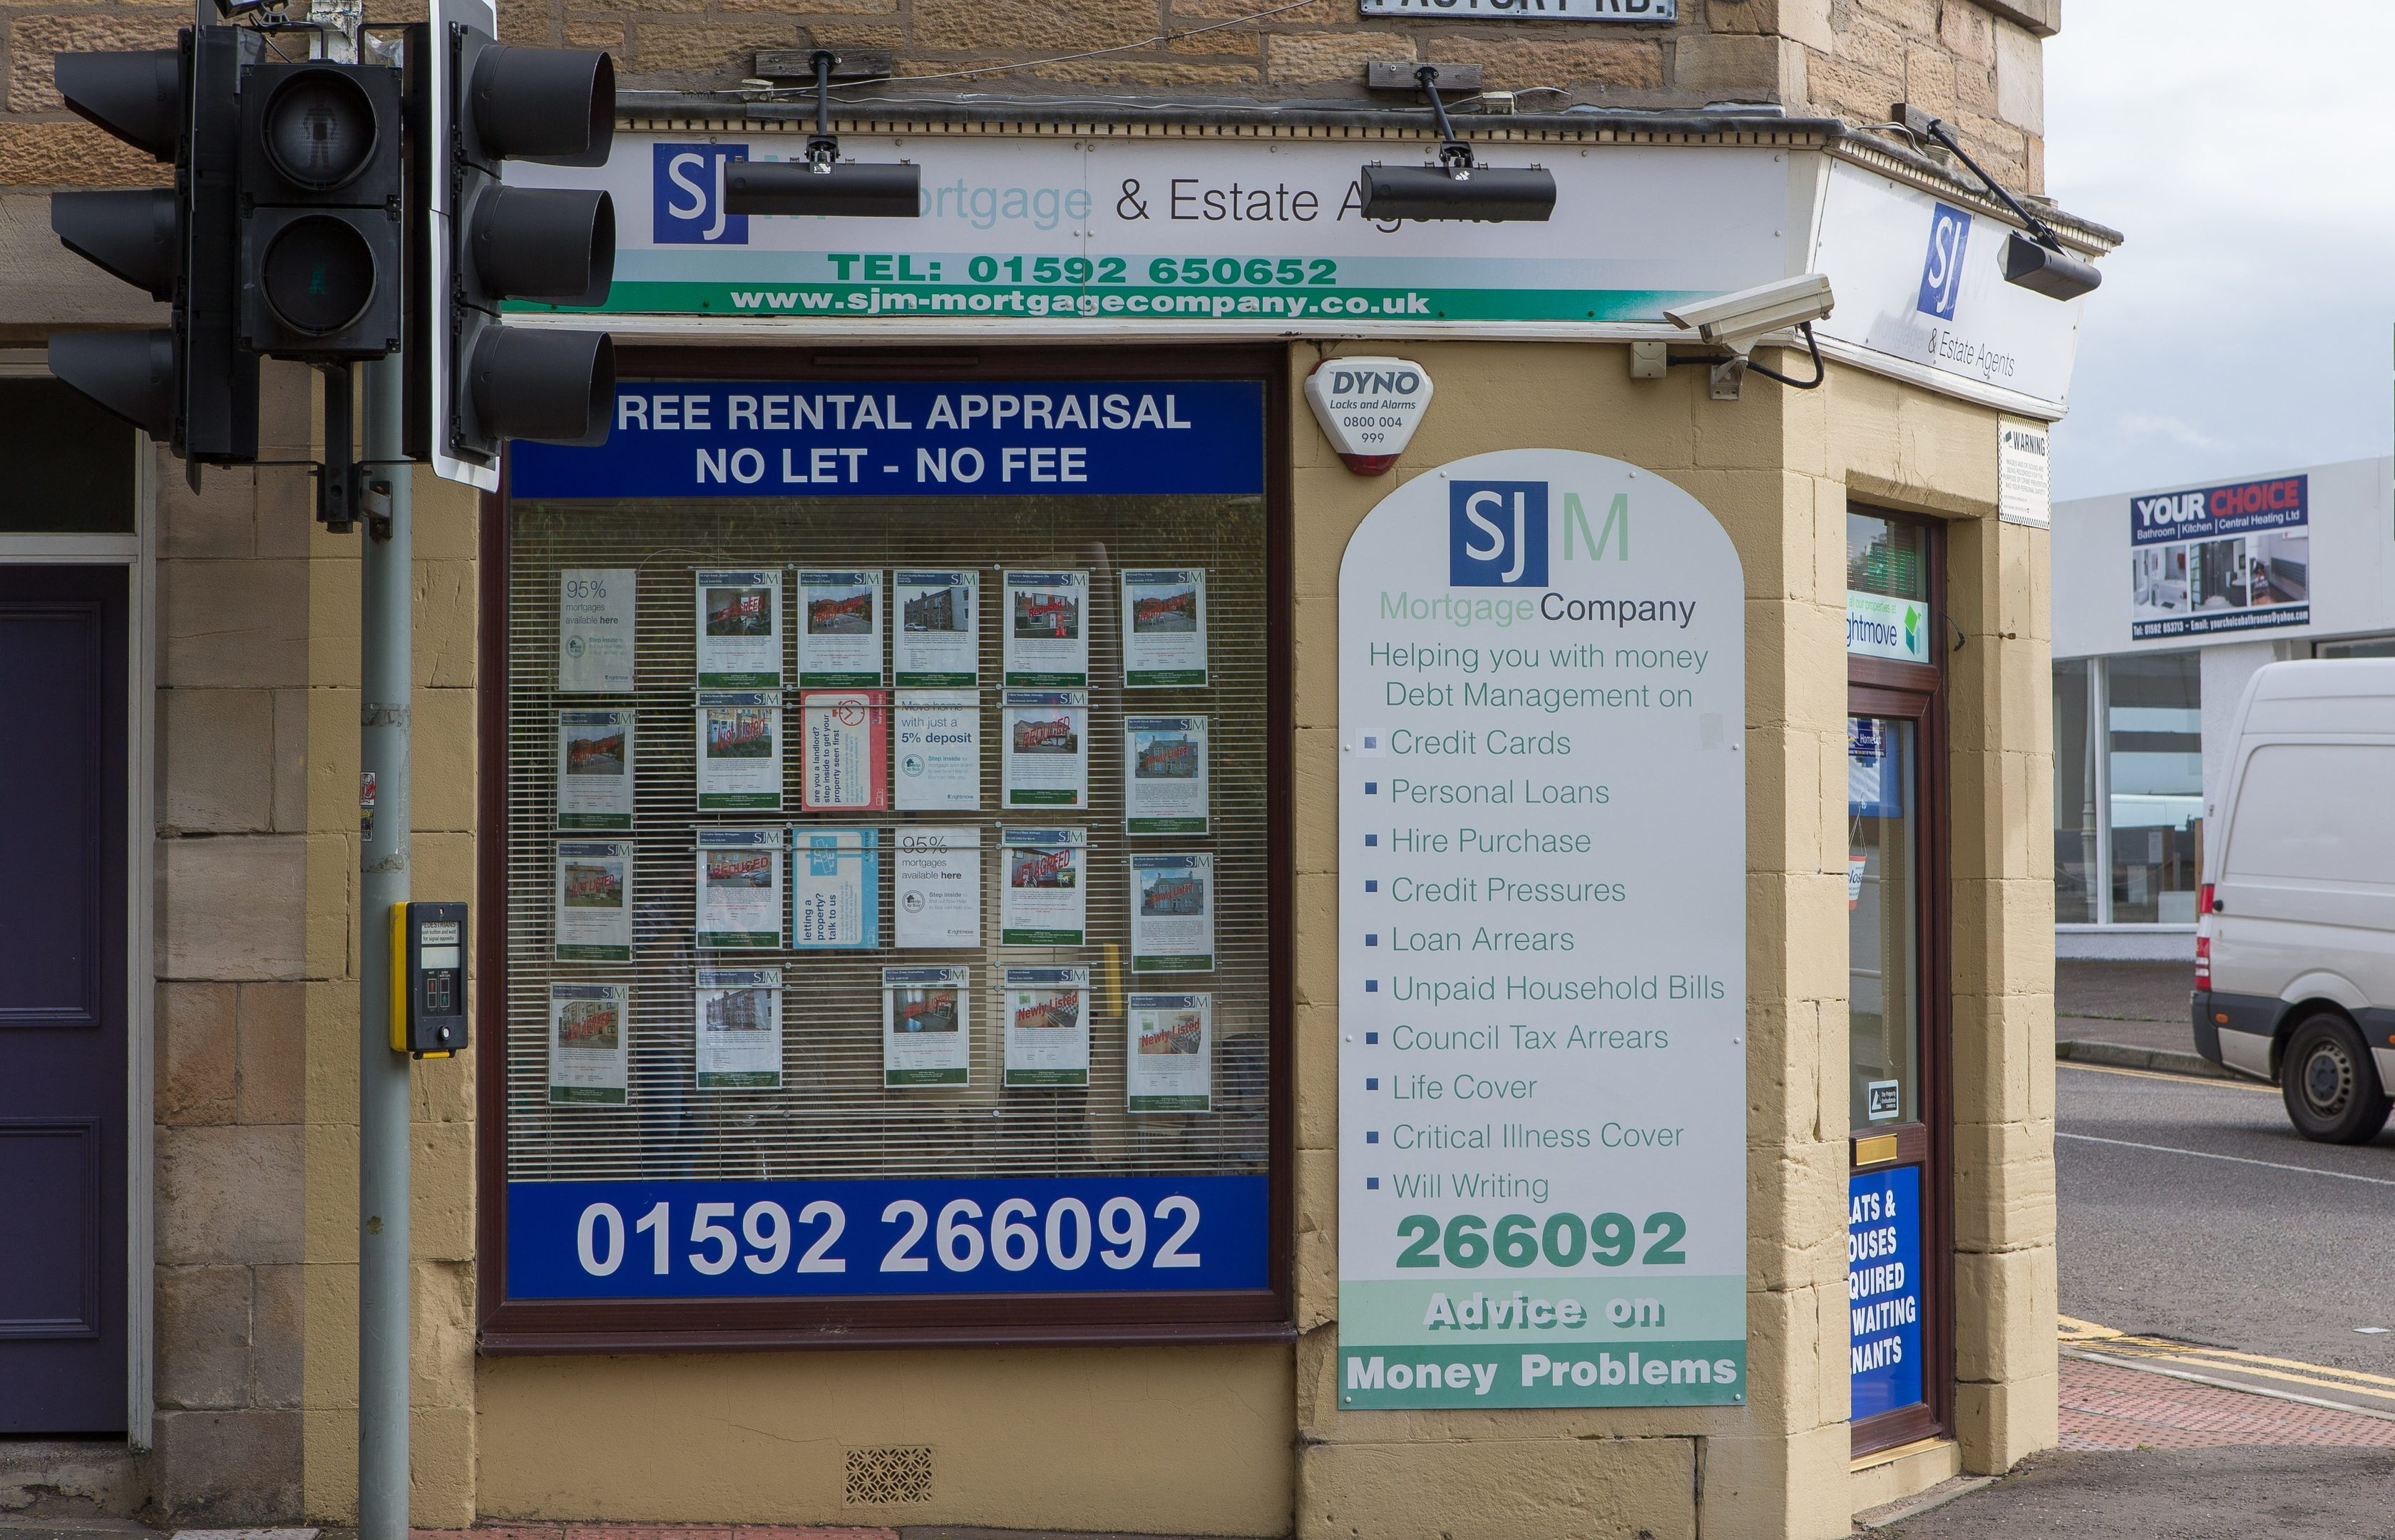 Average rental prices in Dundee have decreased by more than 7% in the last year.